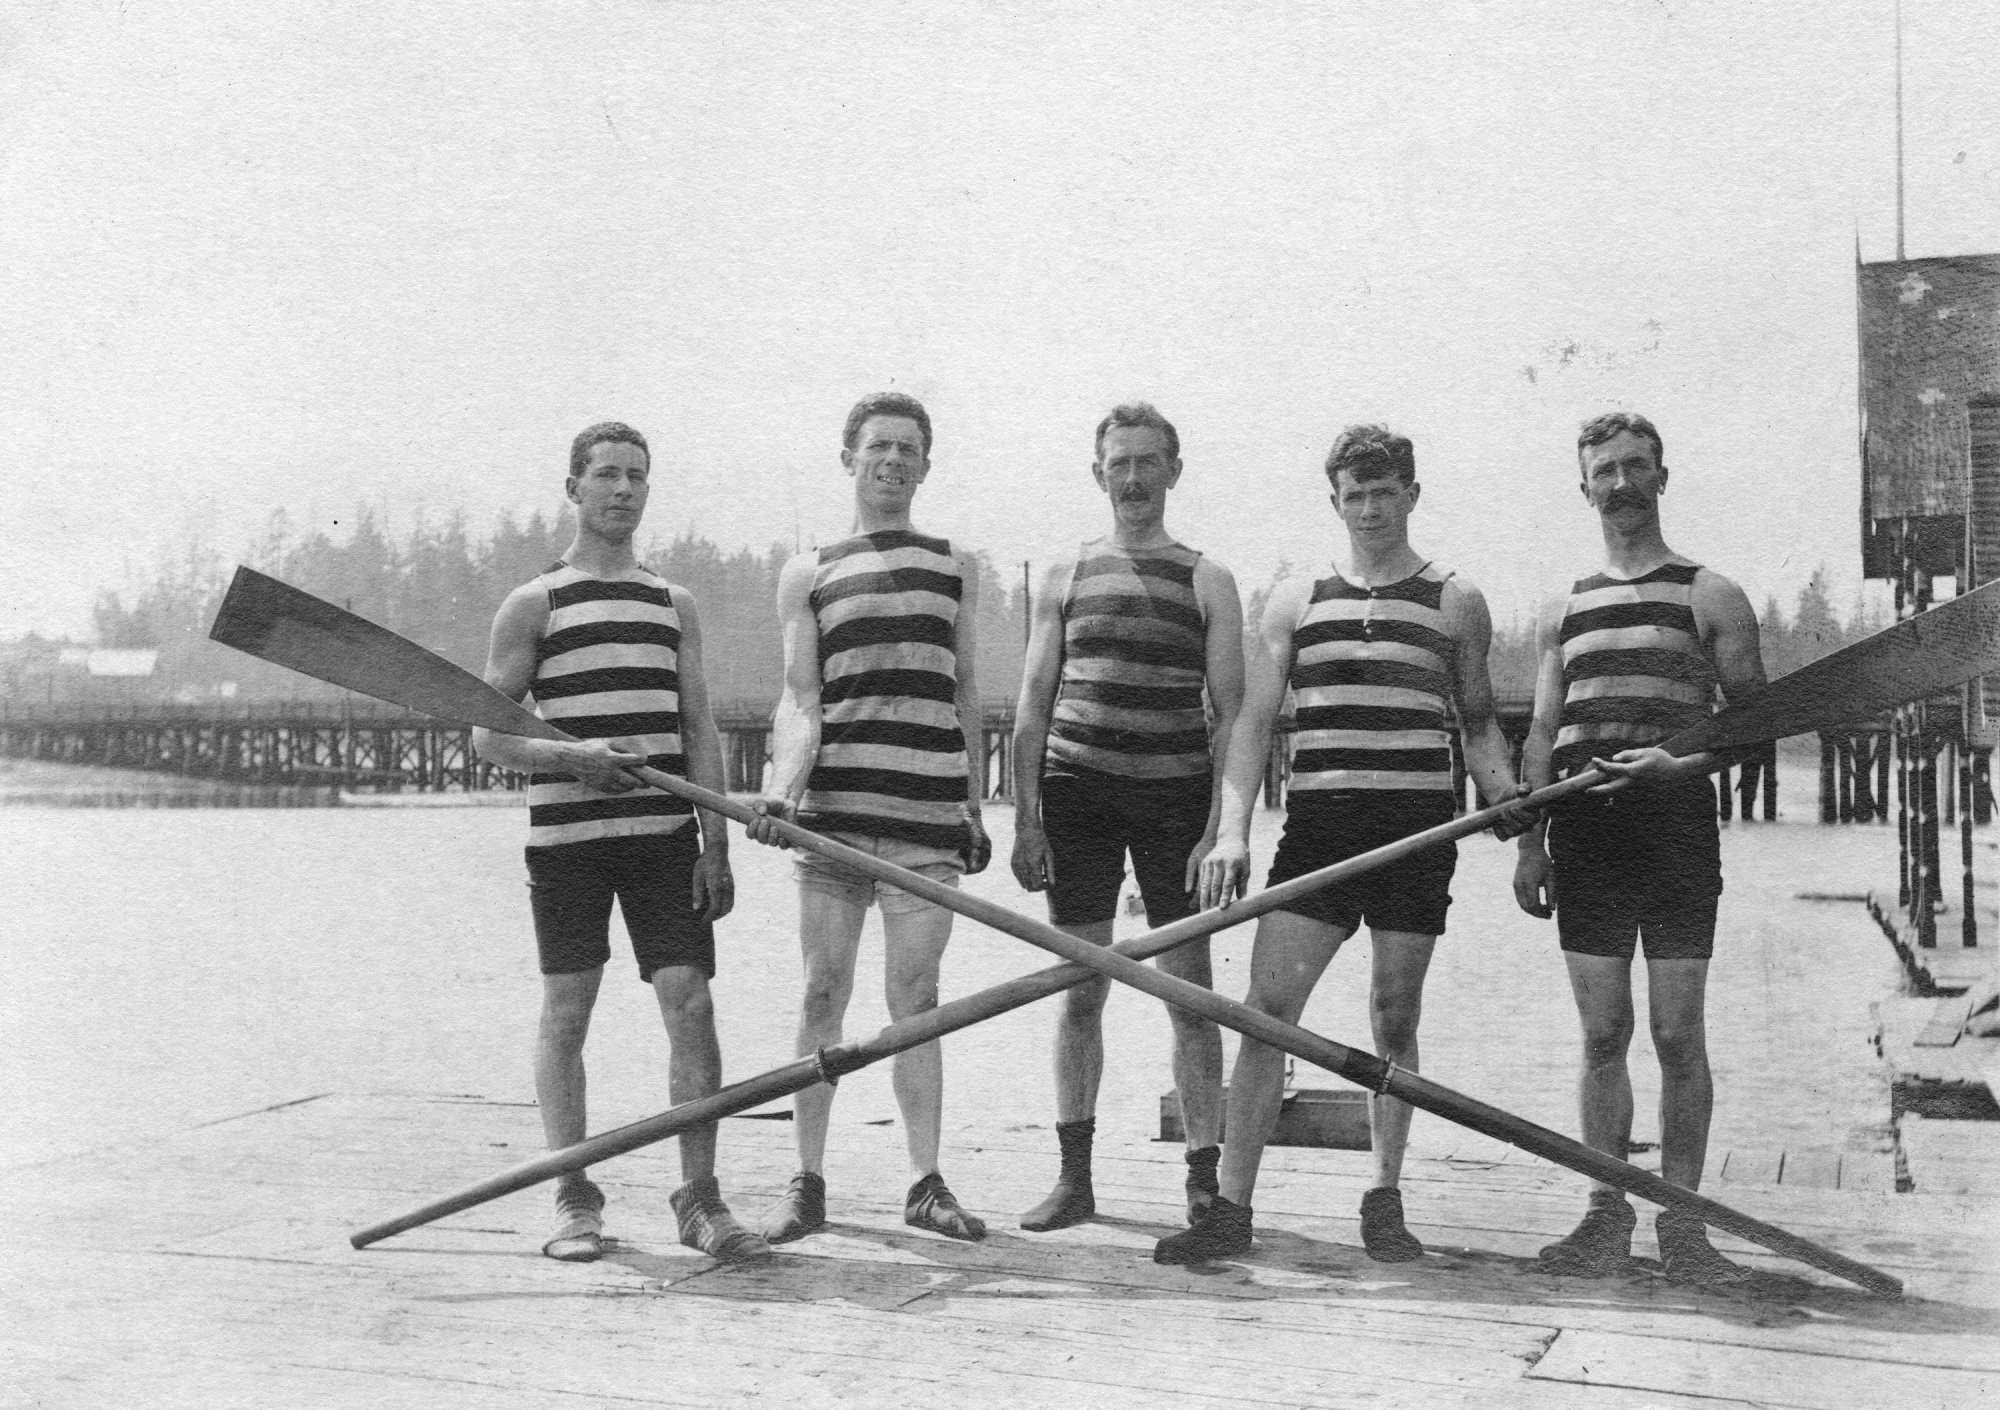 1904-champion-of-rowing-club